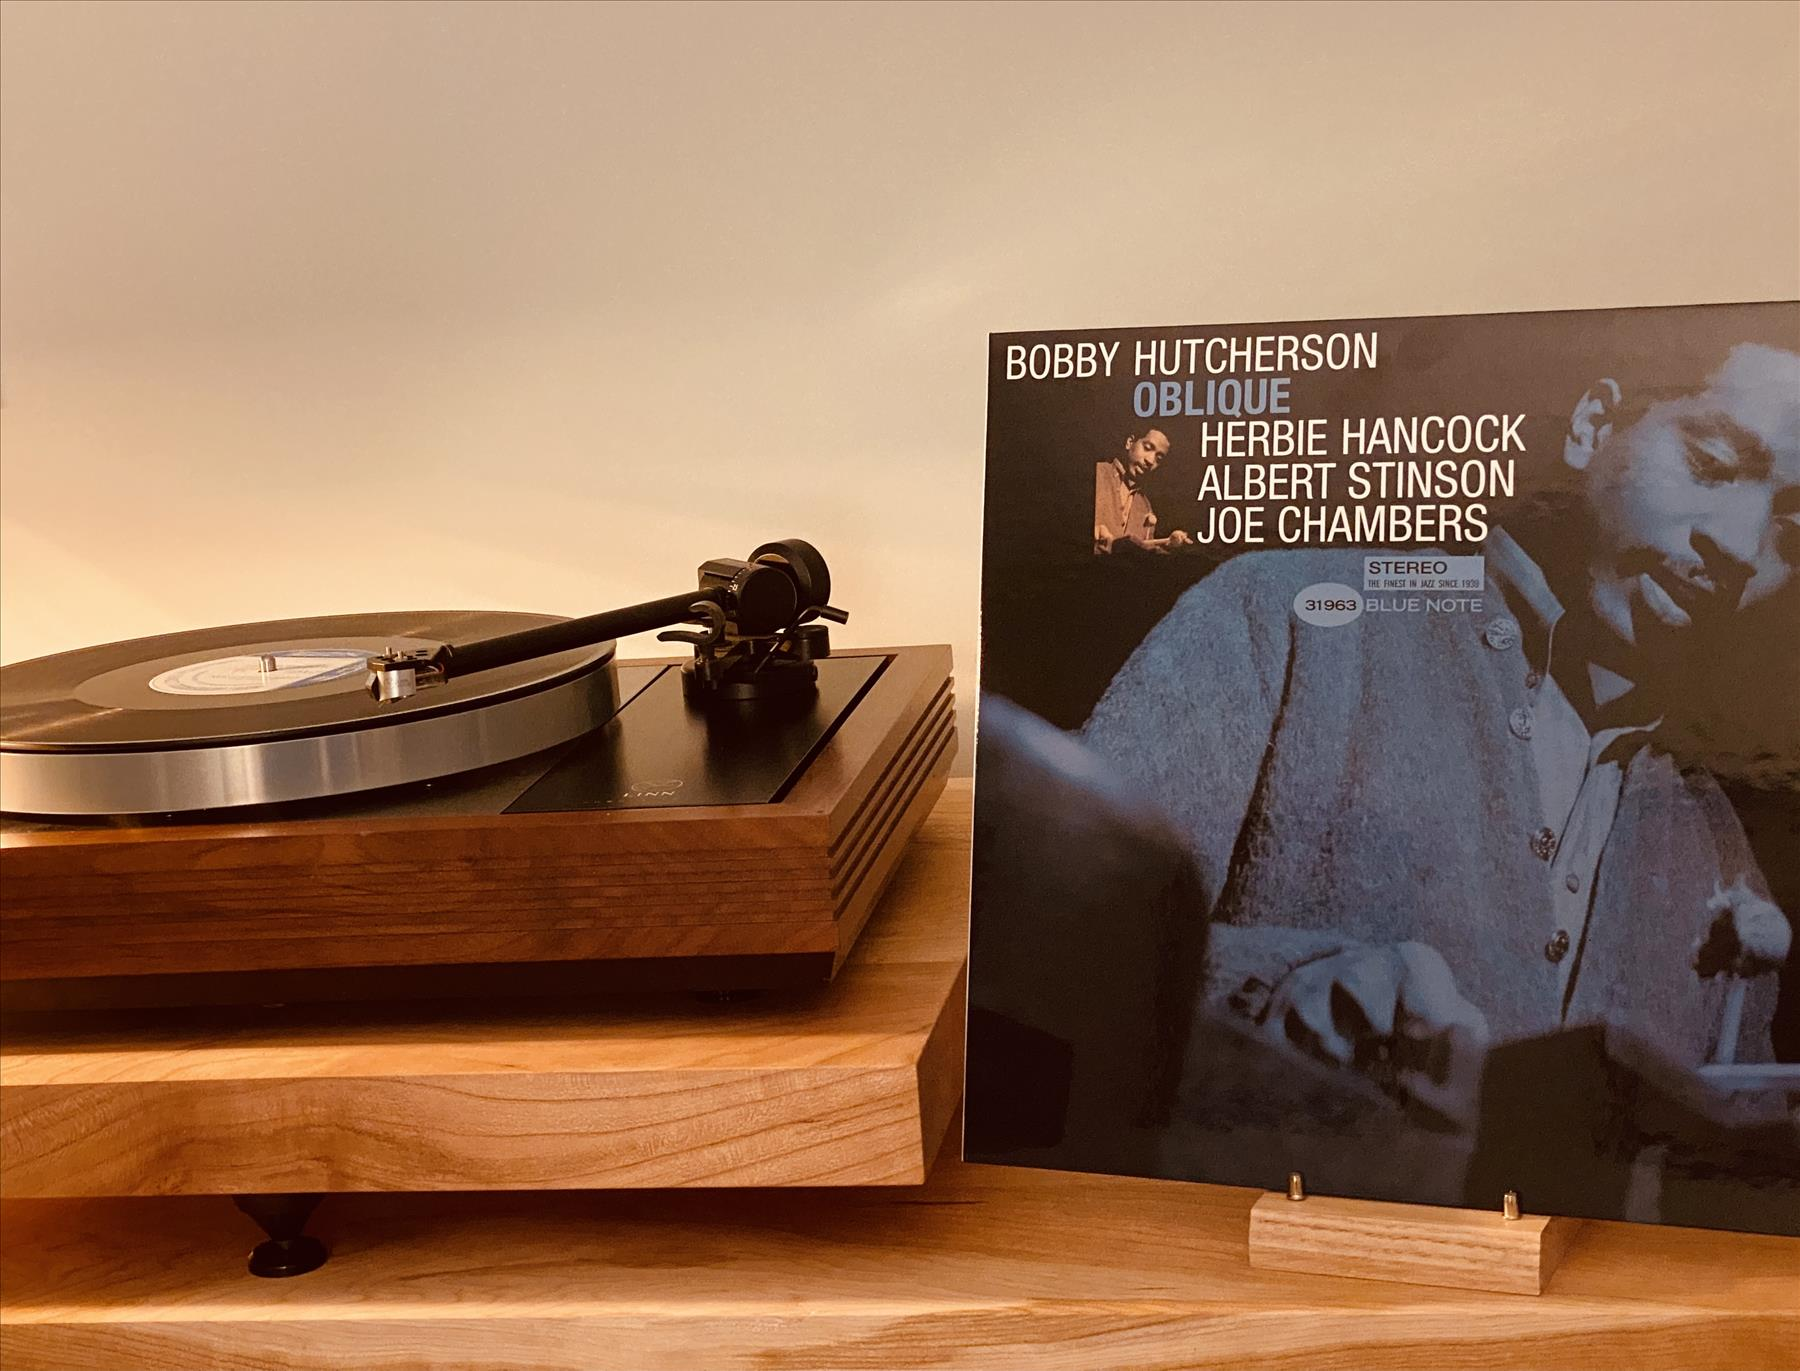 Bobby Hutcherson: oblique? Pretty straight-ahead Jazz